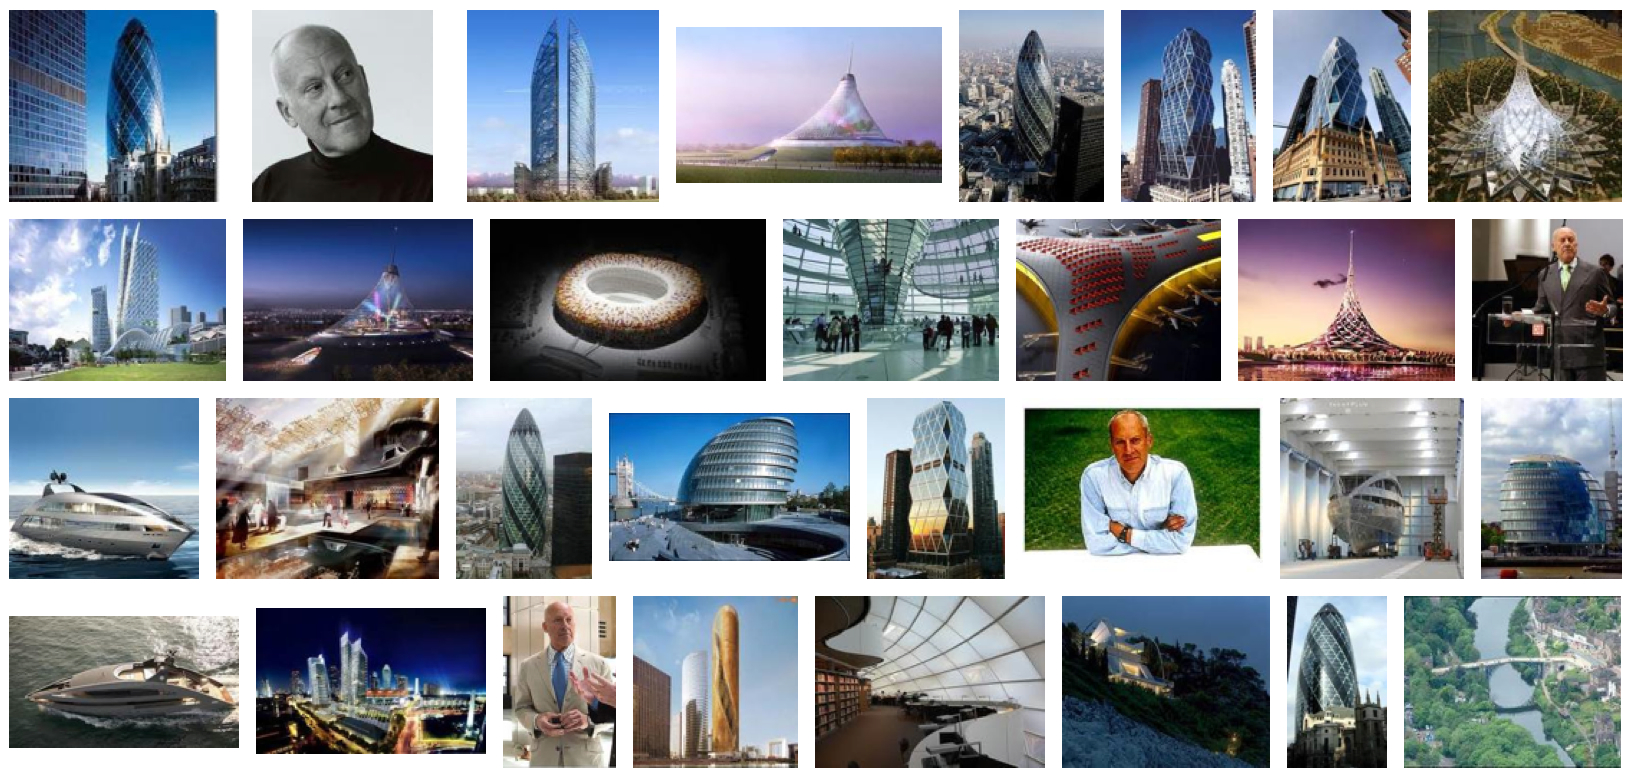 Norman Foster From Google Images Designkultur